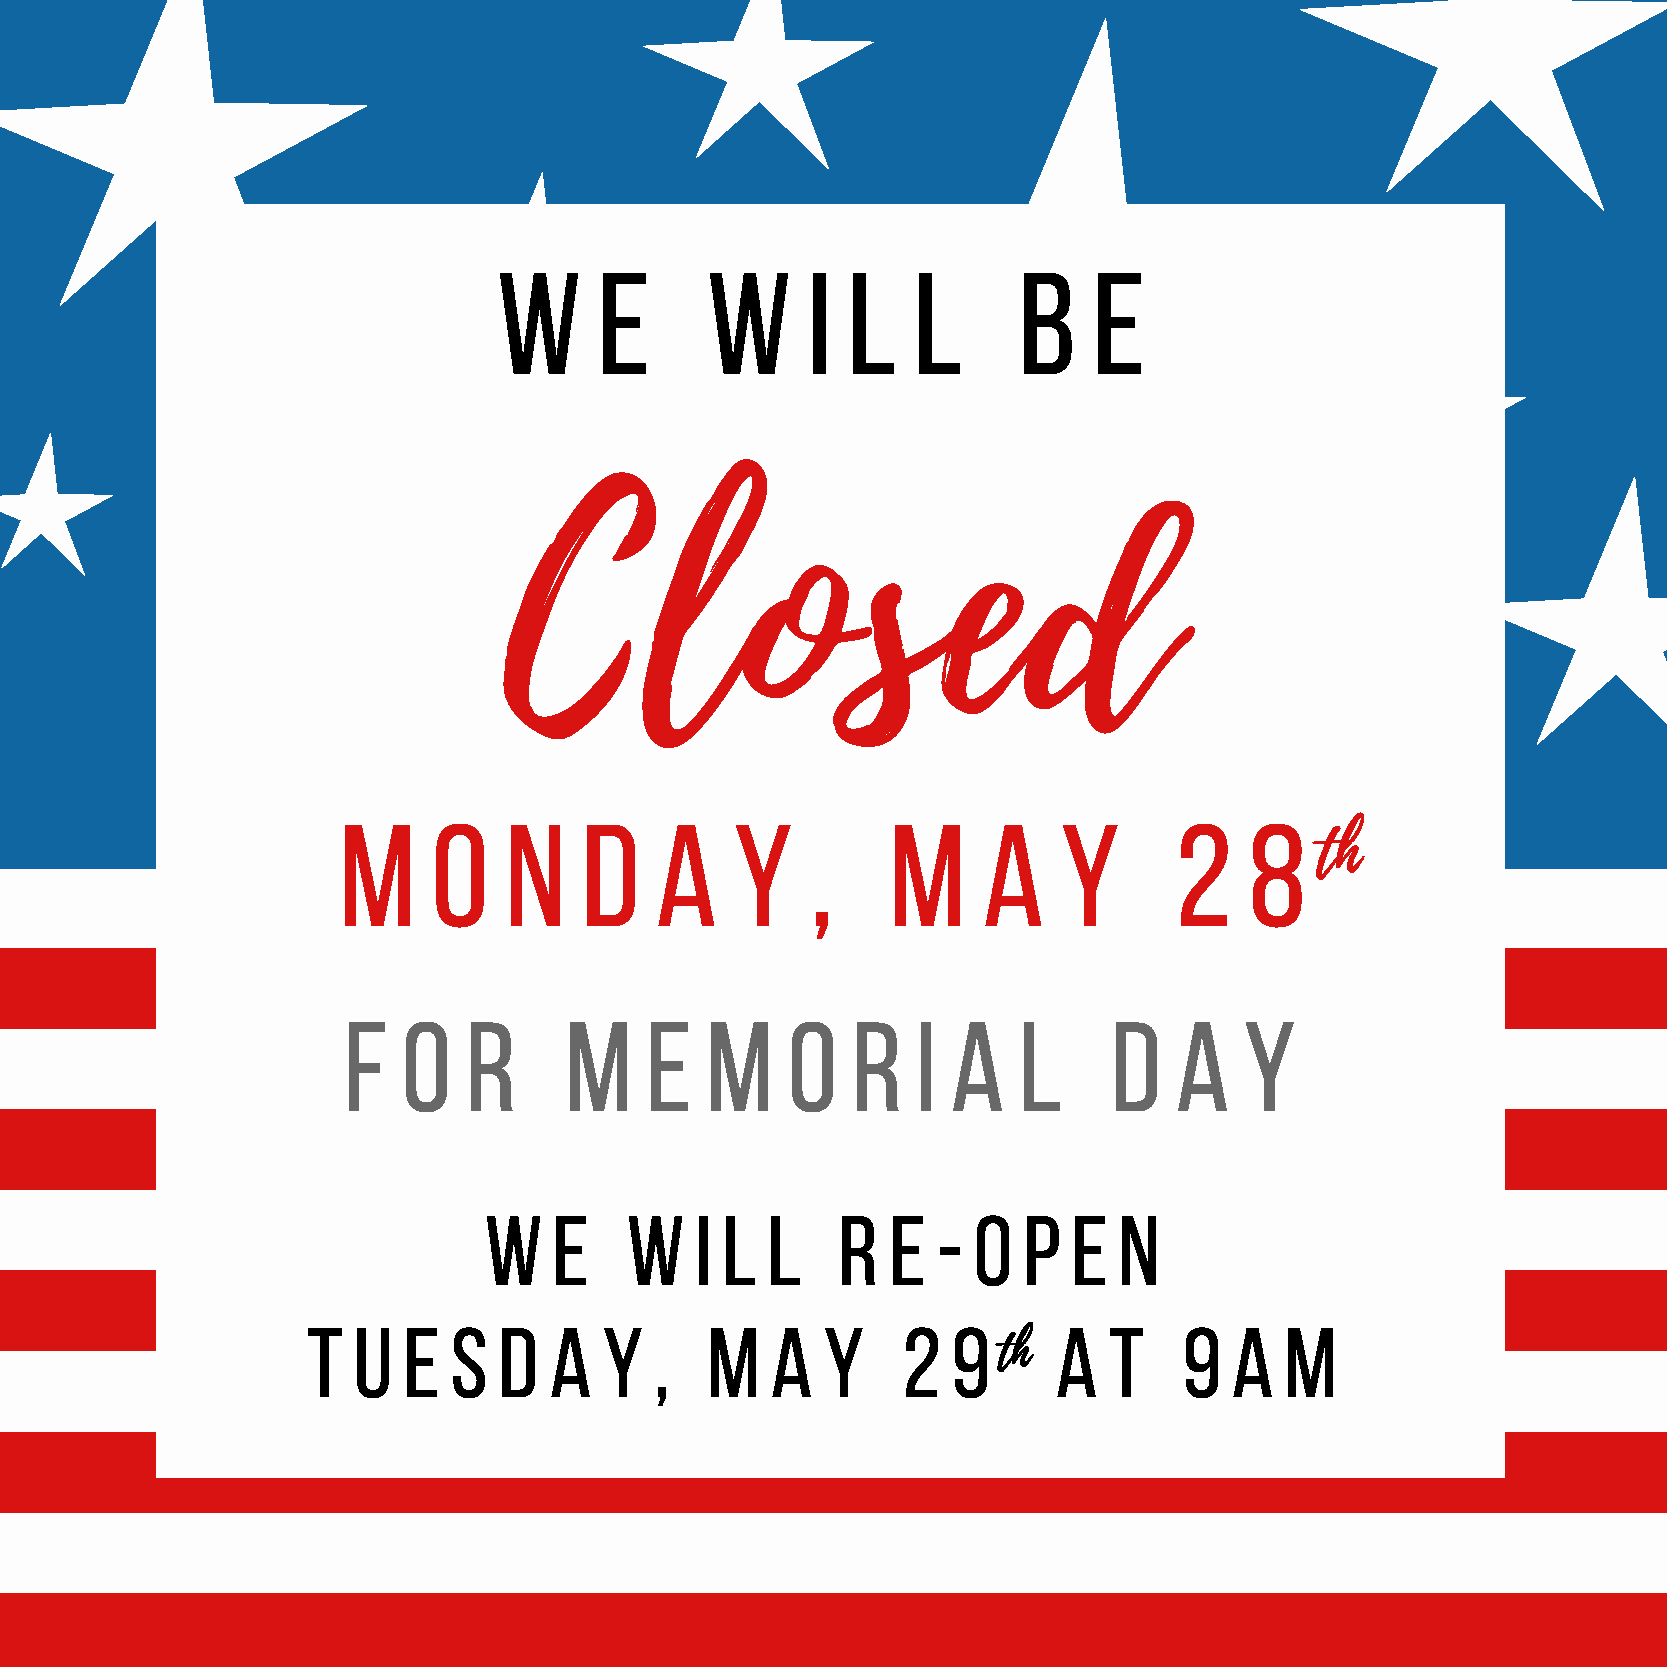 Closed 4th Of July Template Lovely Memorial Day Closed San Gabriel Valley Habitat for Humanity